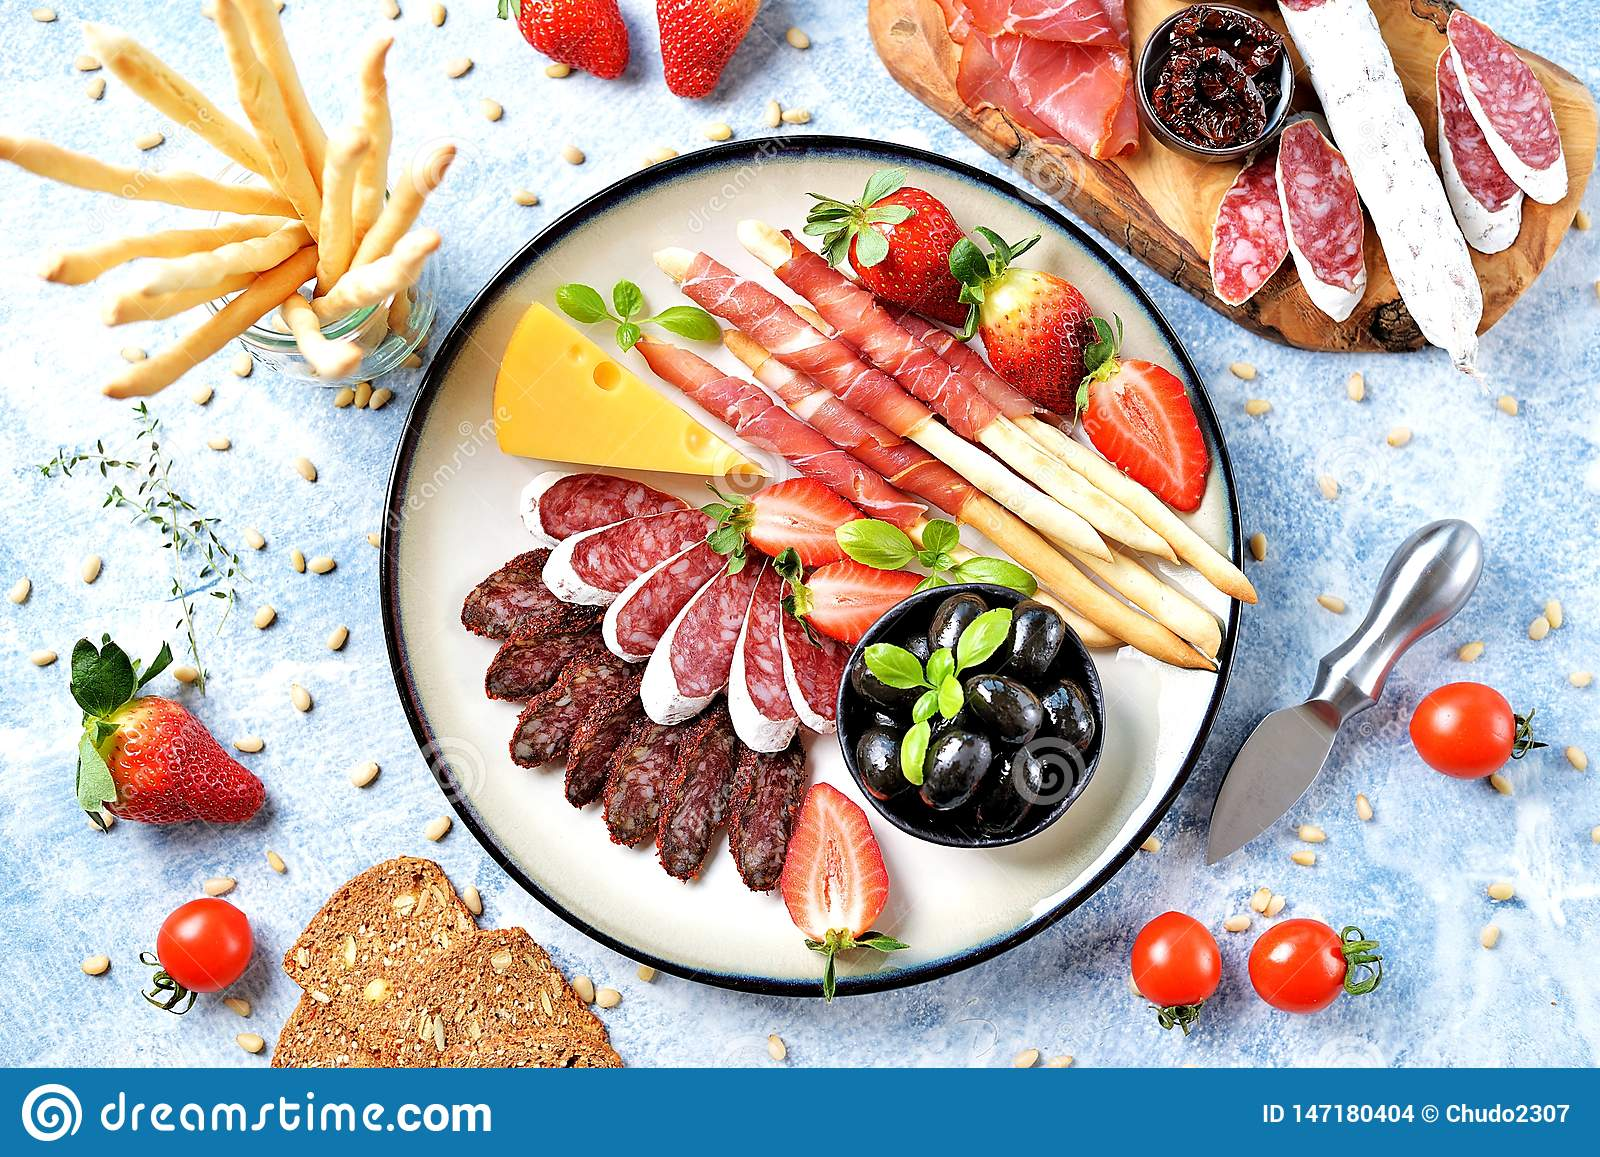 Antipasti snacks - sausage, homemade grissini with jamon, olives, strawberries, capers, cherry tomatoes, white wine, dried tomatoe